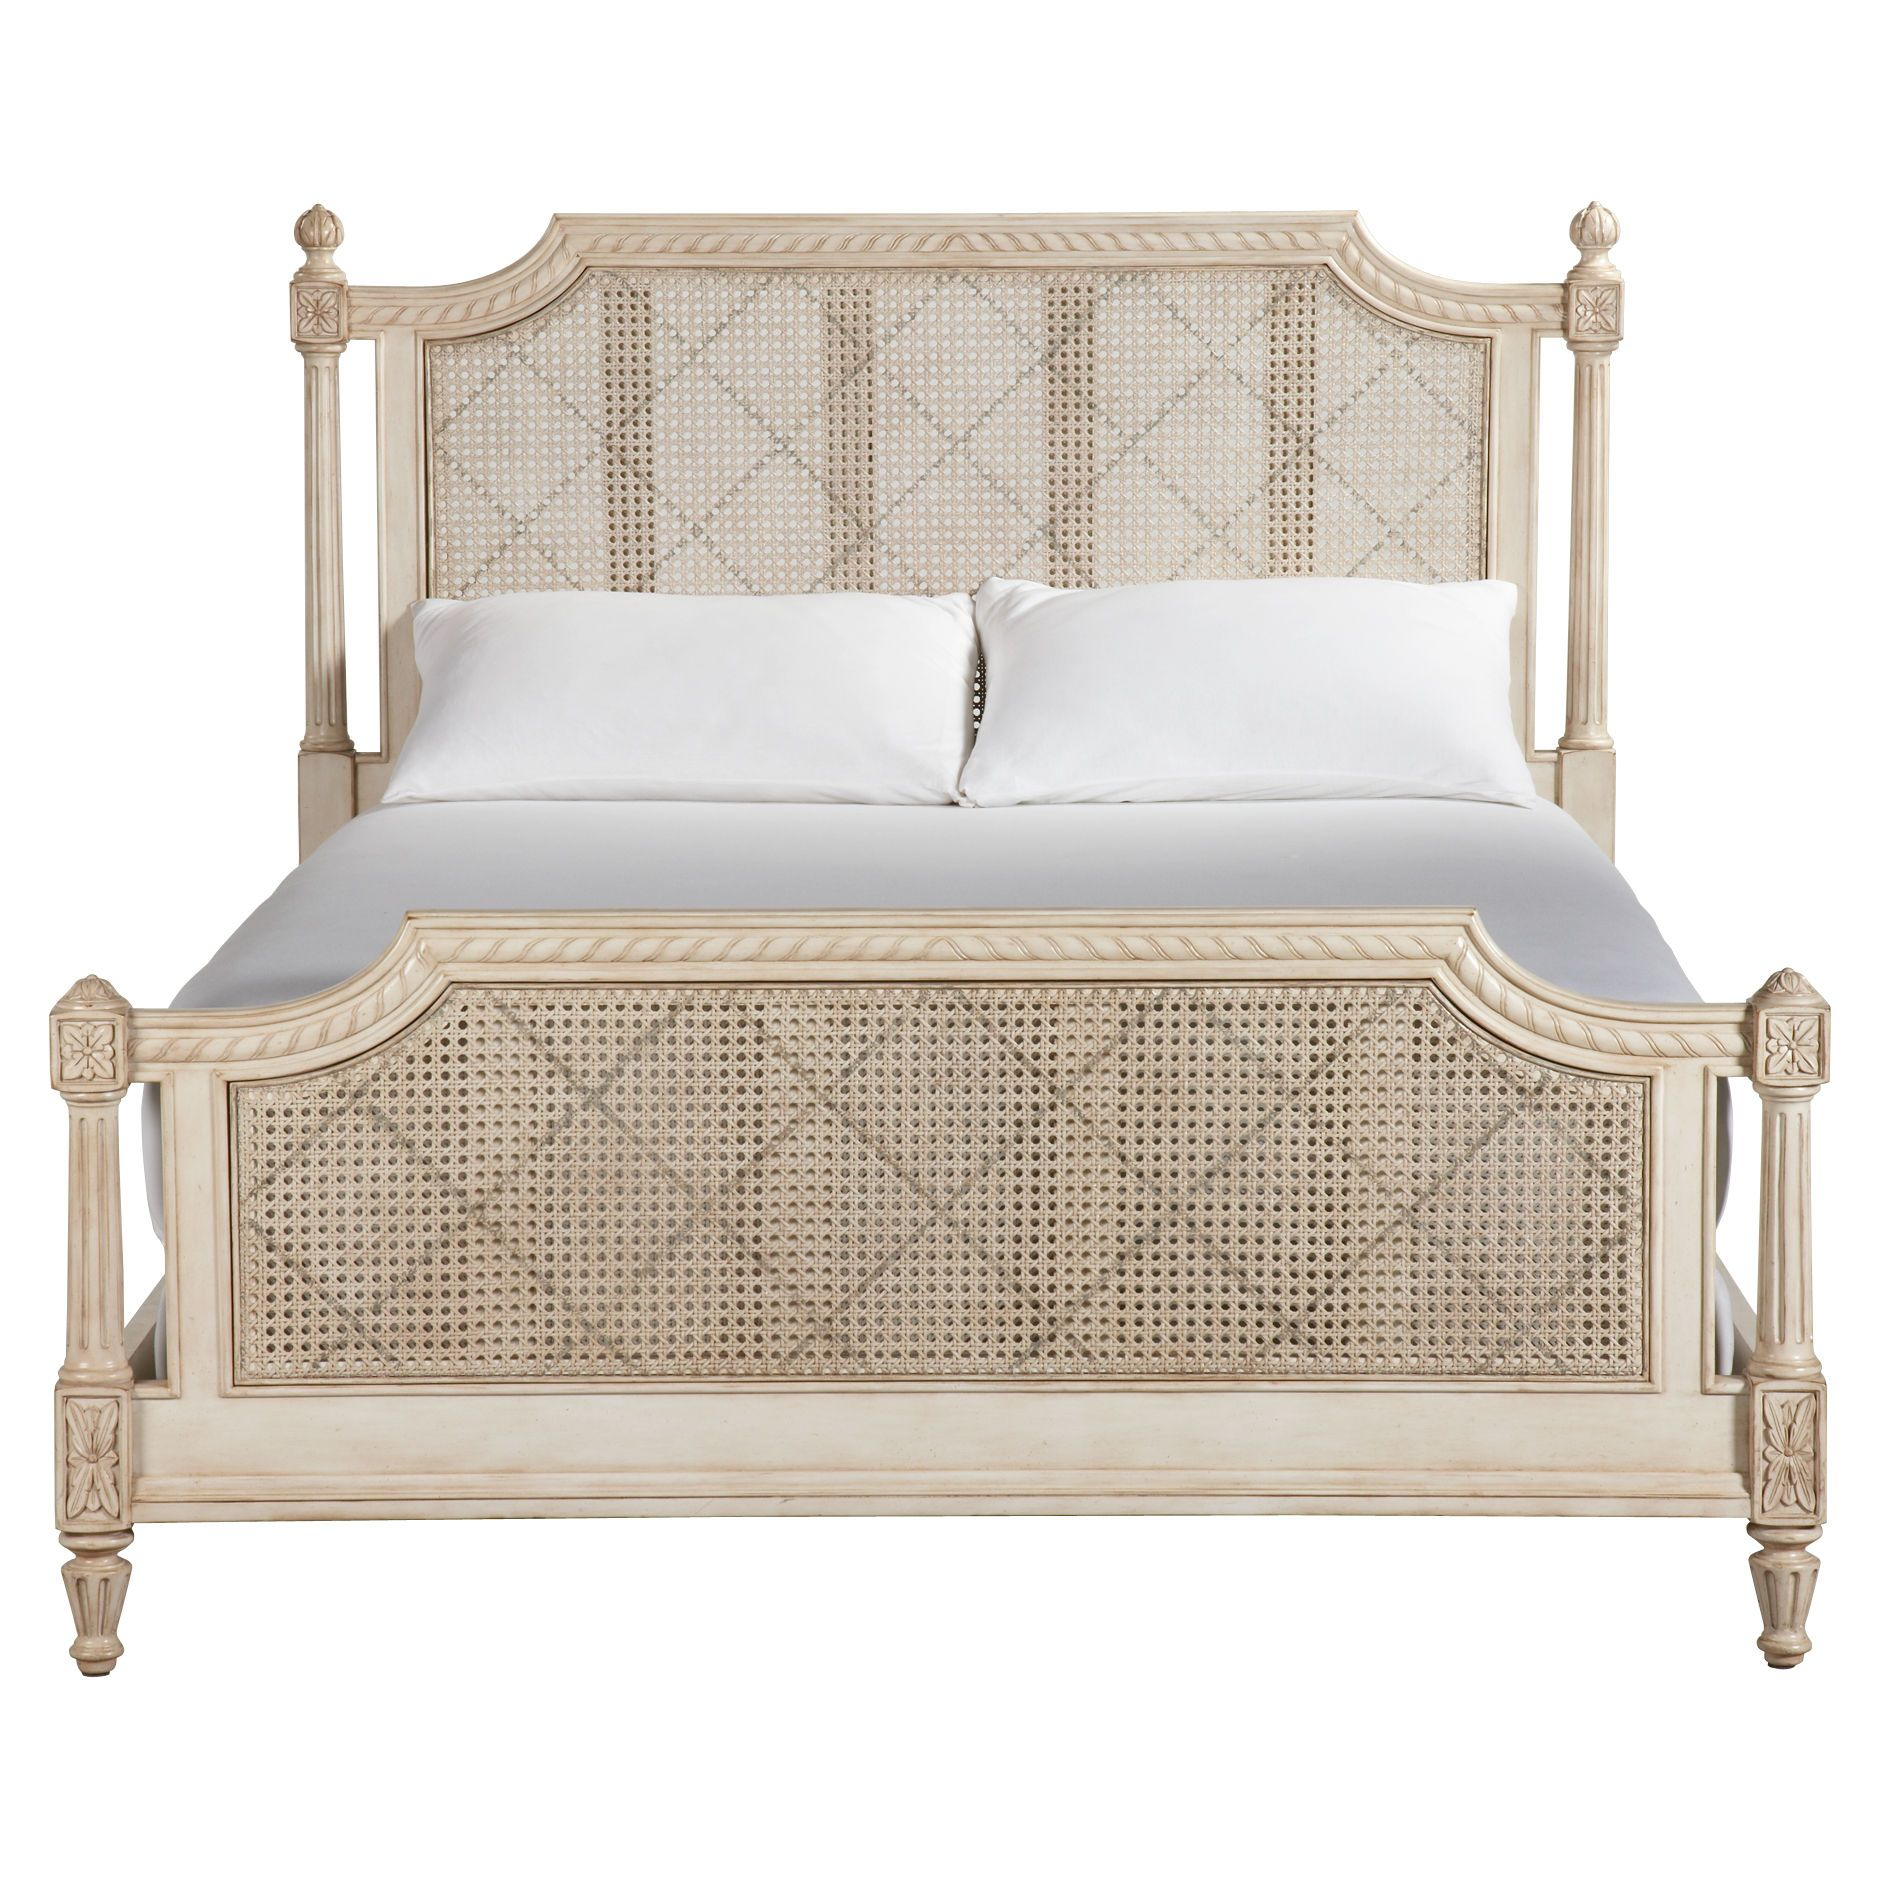 elise bed ethan allen us unfortunately only a queen not twin full leighton 39 s bedroom. Black Bedroom Furniture Sets. Home Design Ideas